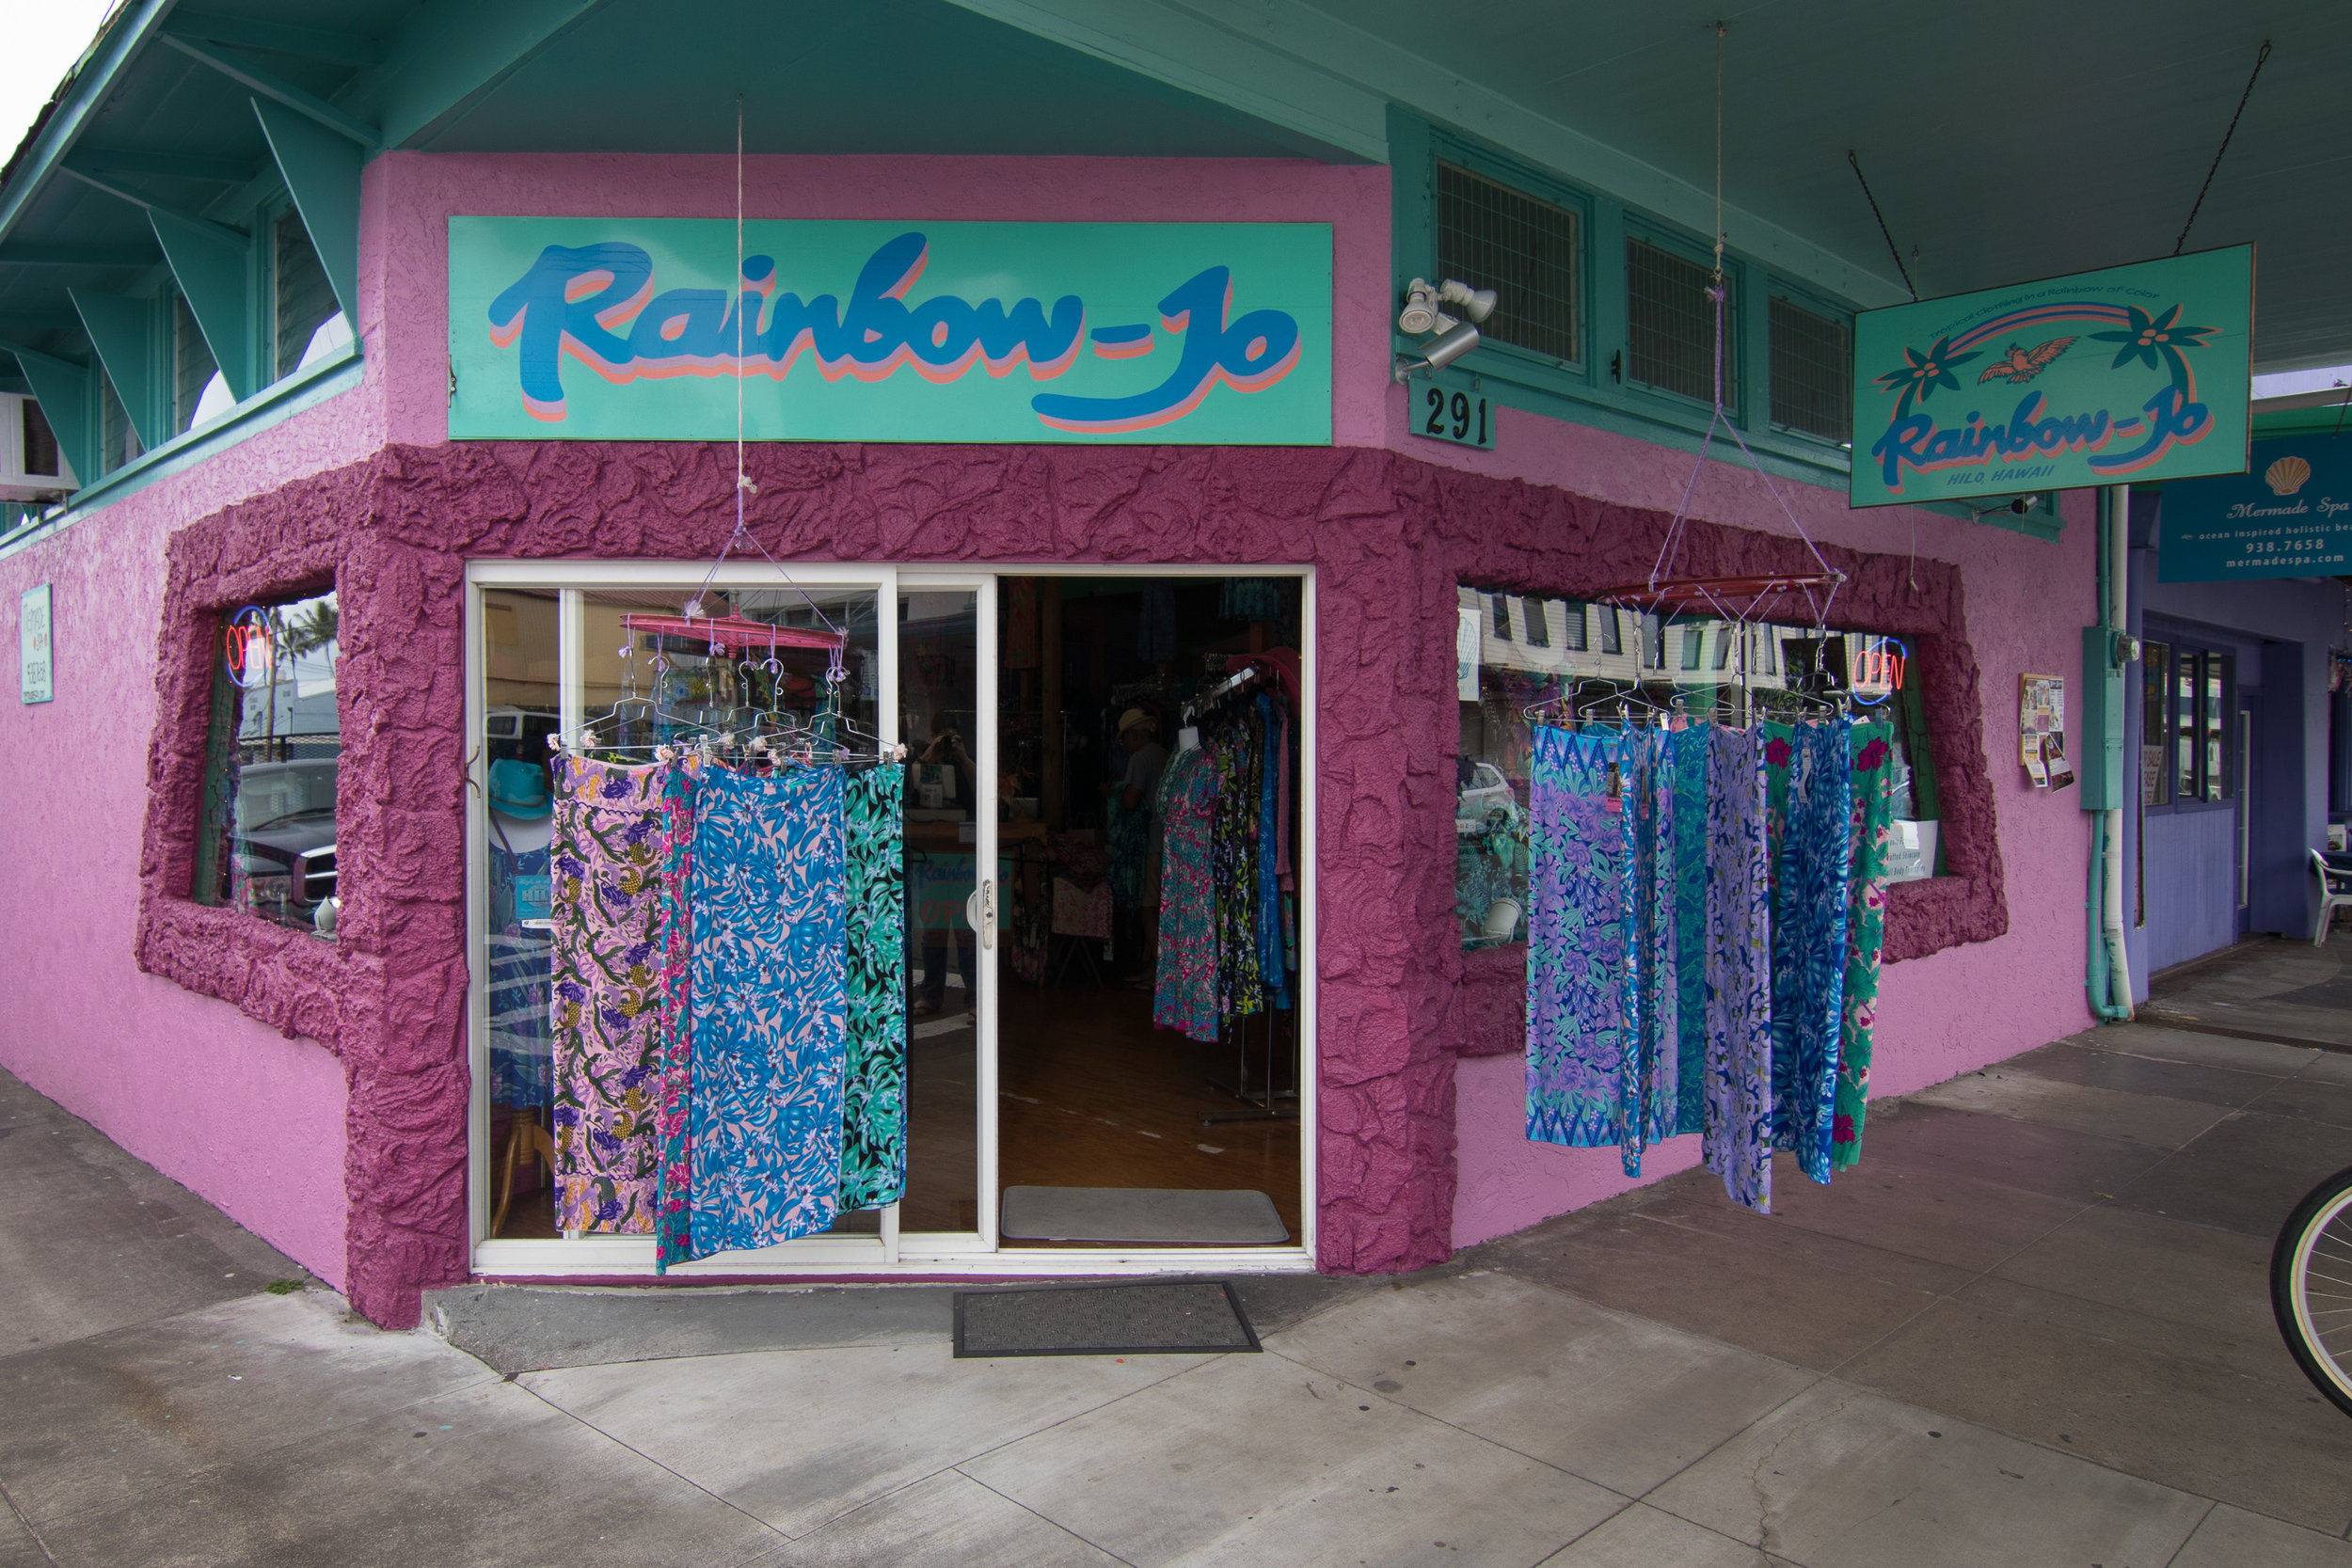 Come visit us in Hilo at 291 Keawe St.   We are open Monday - Saturday from 9am to 5pm.